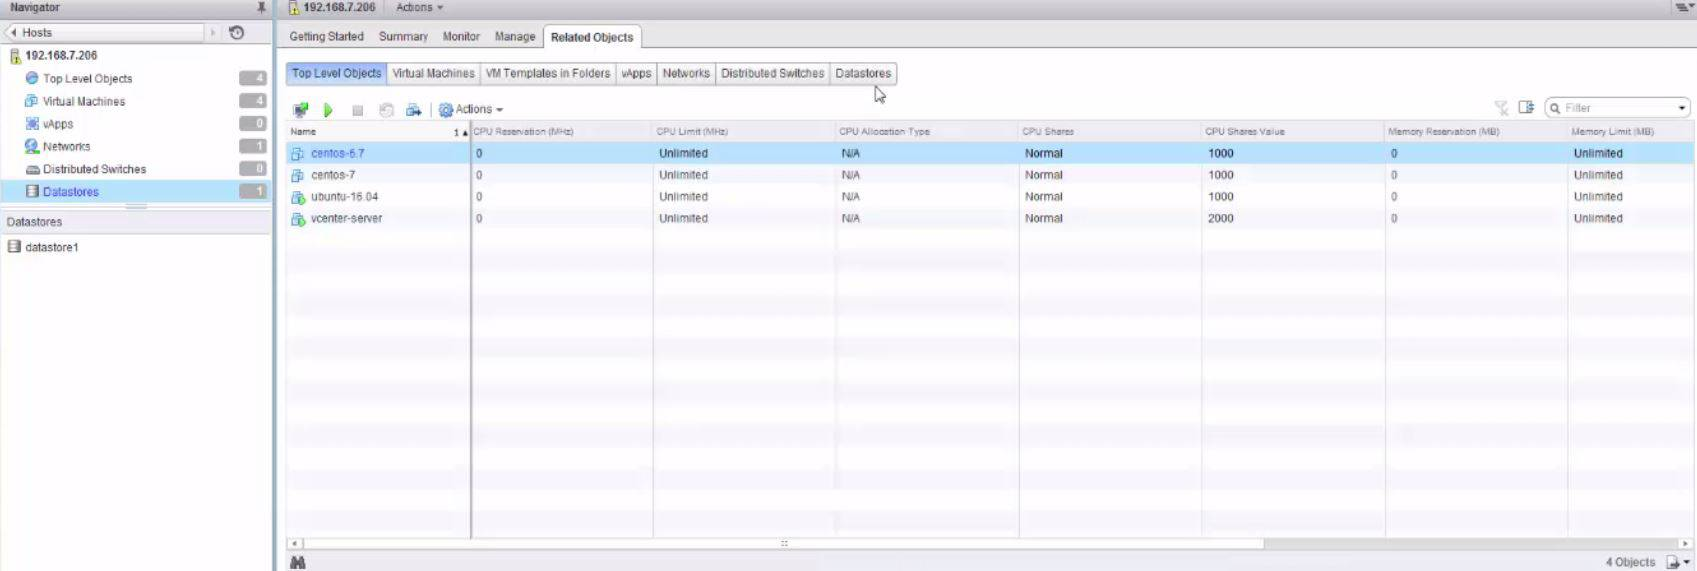 How to add NFS Datastore in VMware Vcenter 6 0 | LinuxHelp